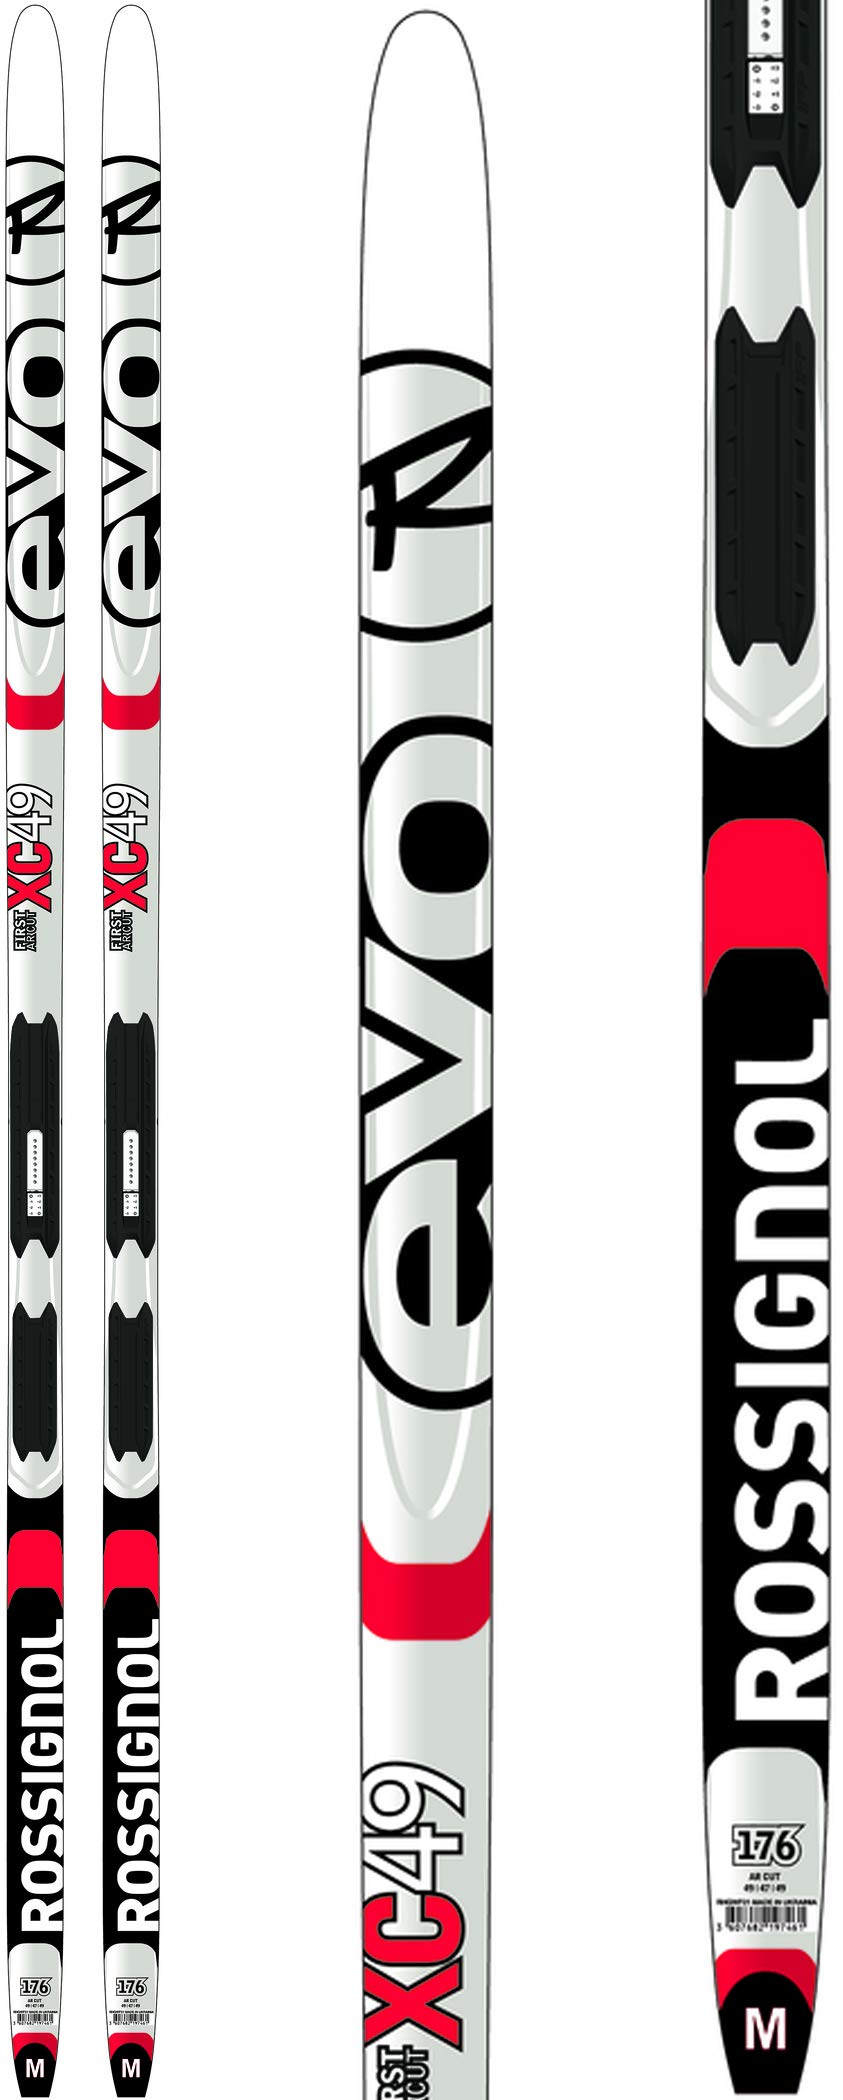 Rossignol Evo XC 49 IFP Mens XC Skis 176 w/Tour Step-in Bindings XC Ski Package Mens Sz 176cm by Rossignol